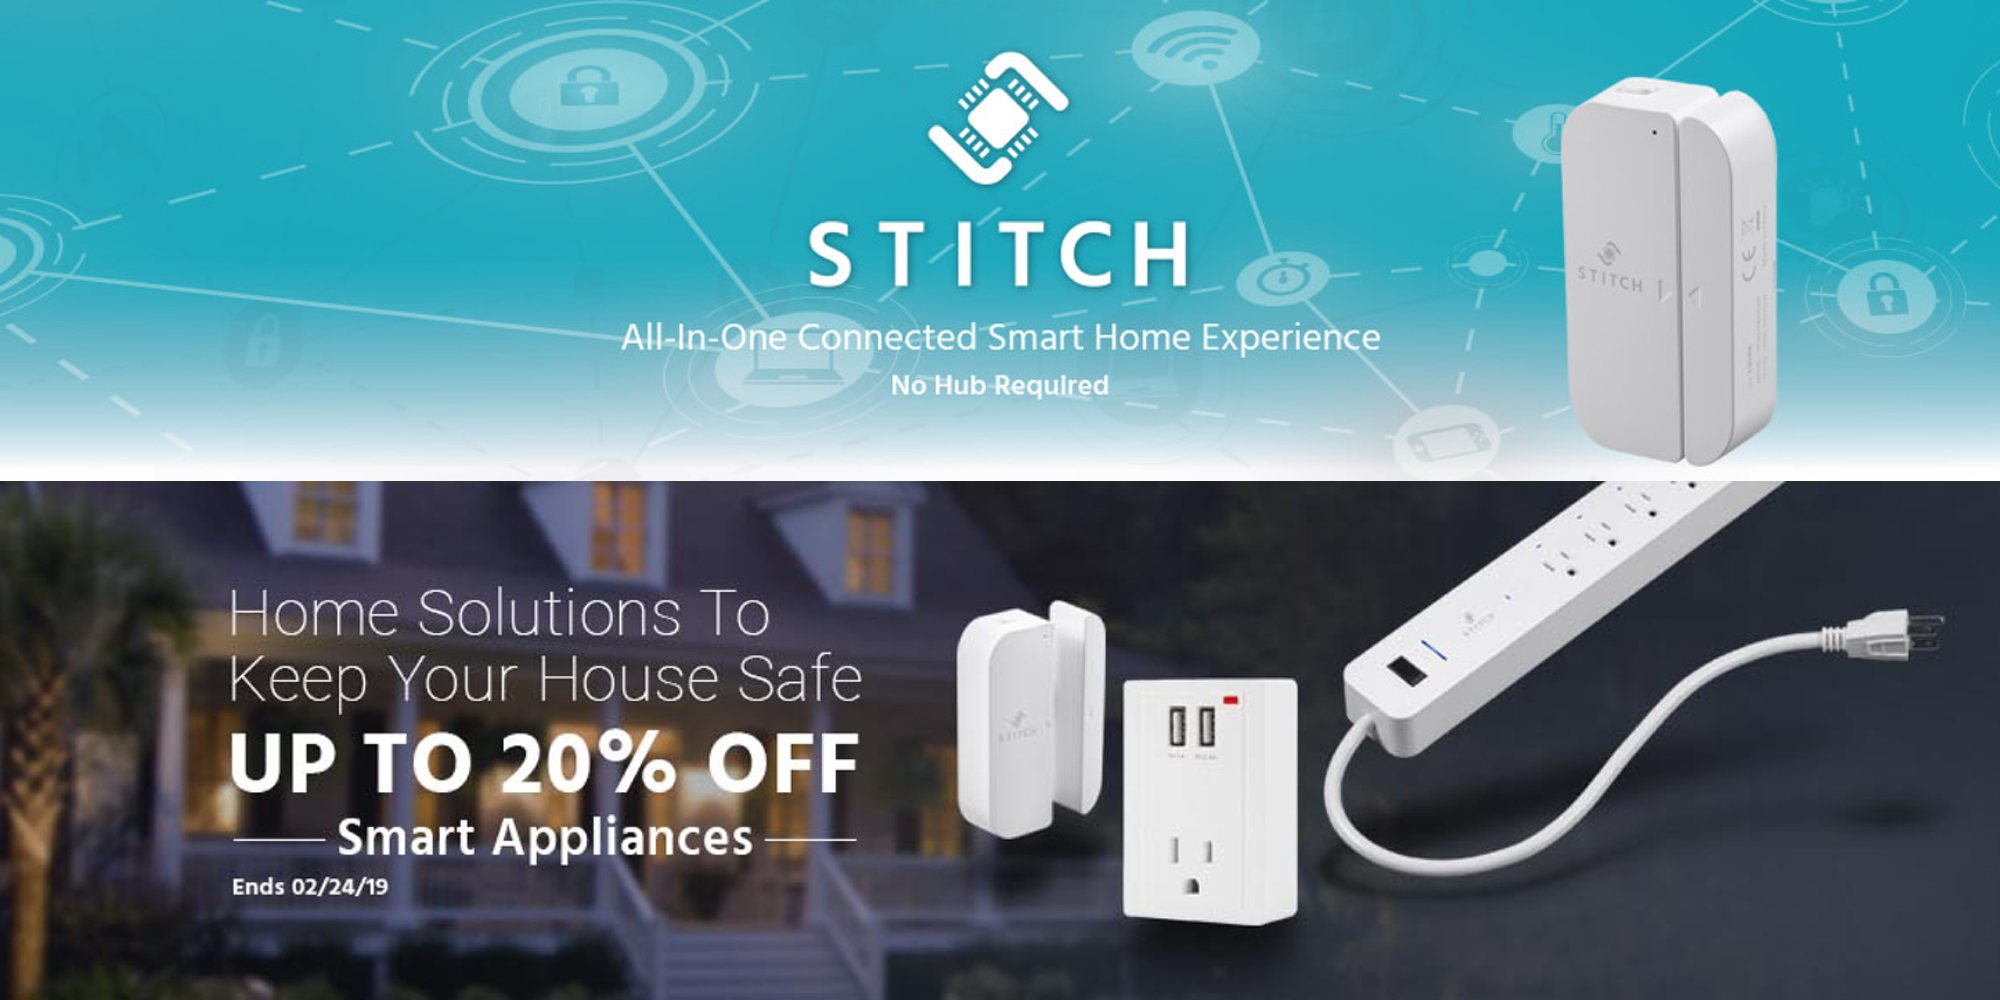 Save up to 20% on Z-Wave, STITCH and other Monoprice smart home accessories from $17